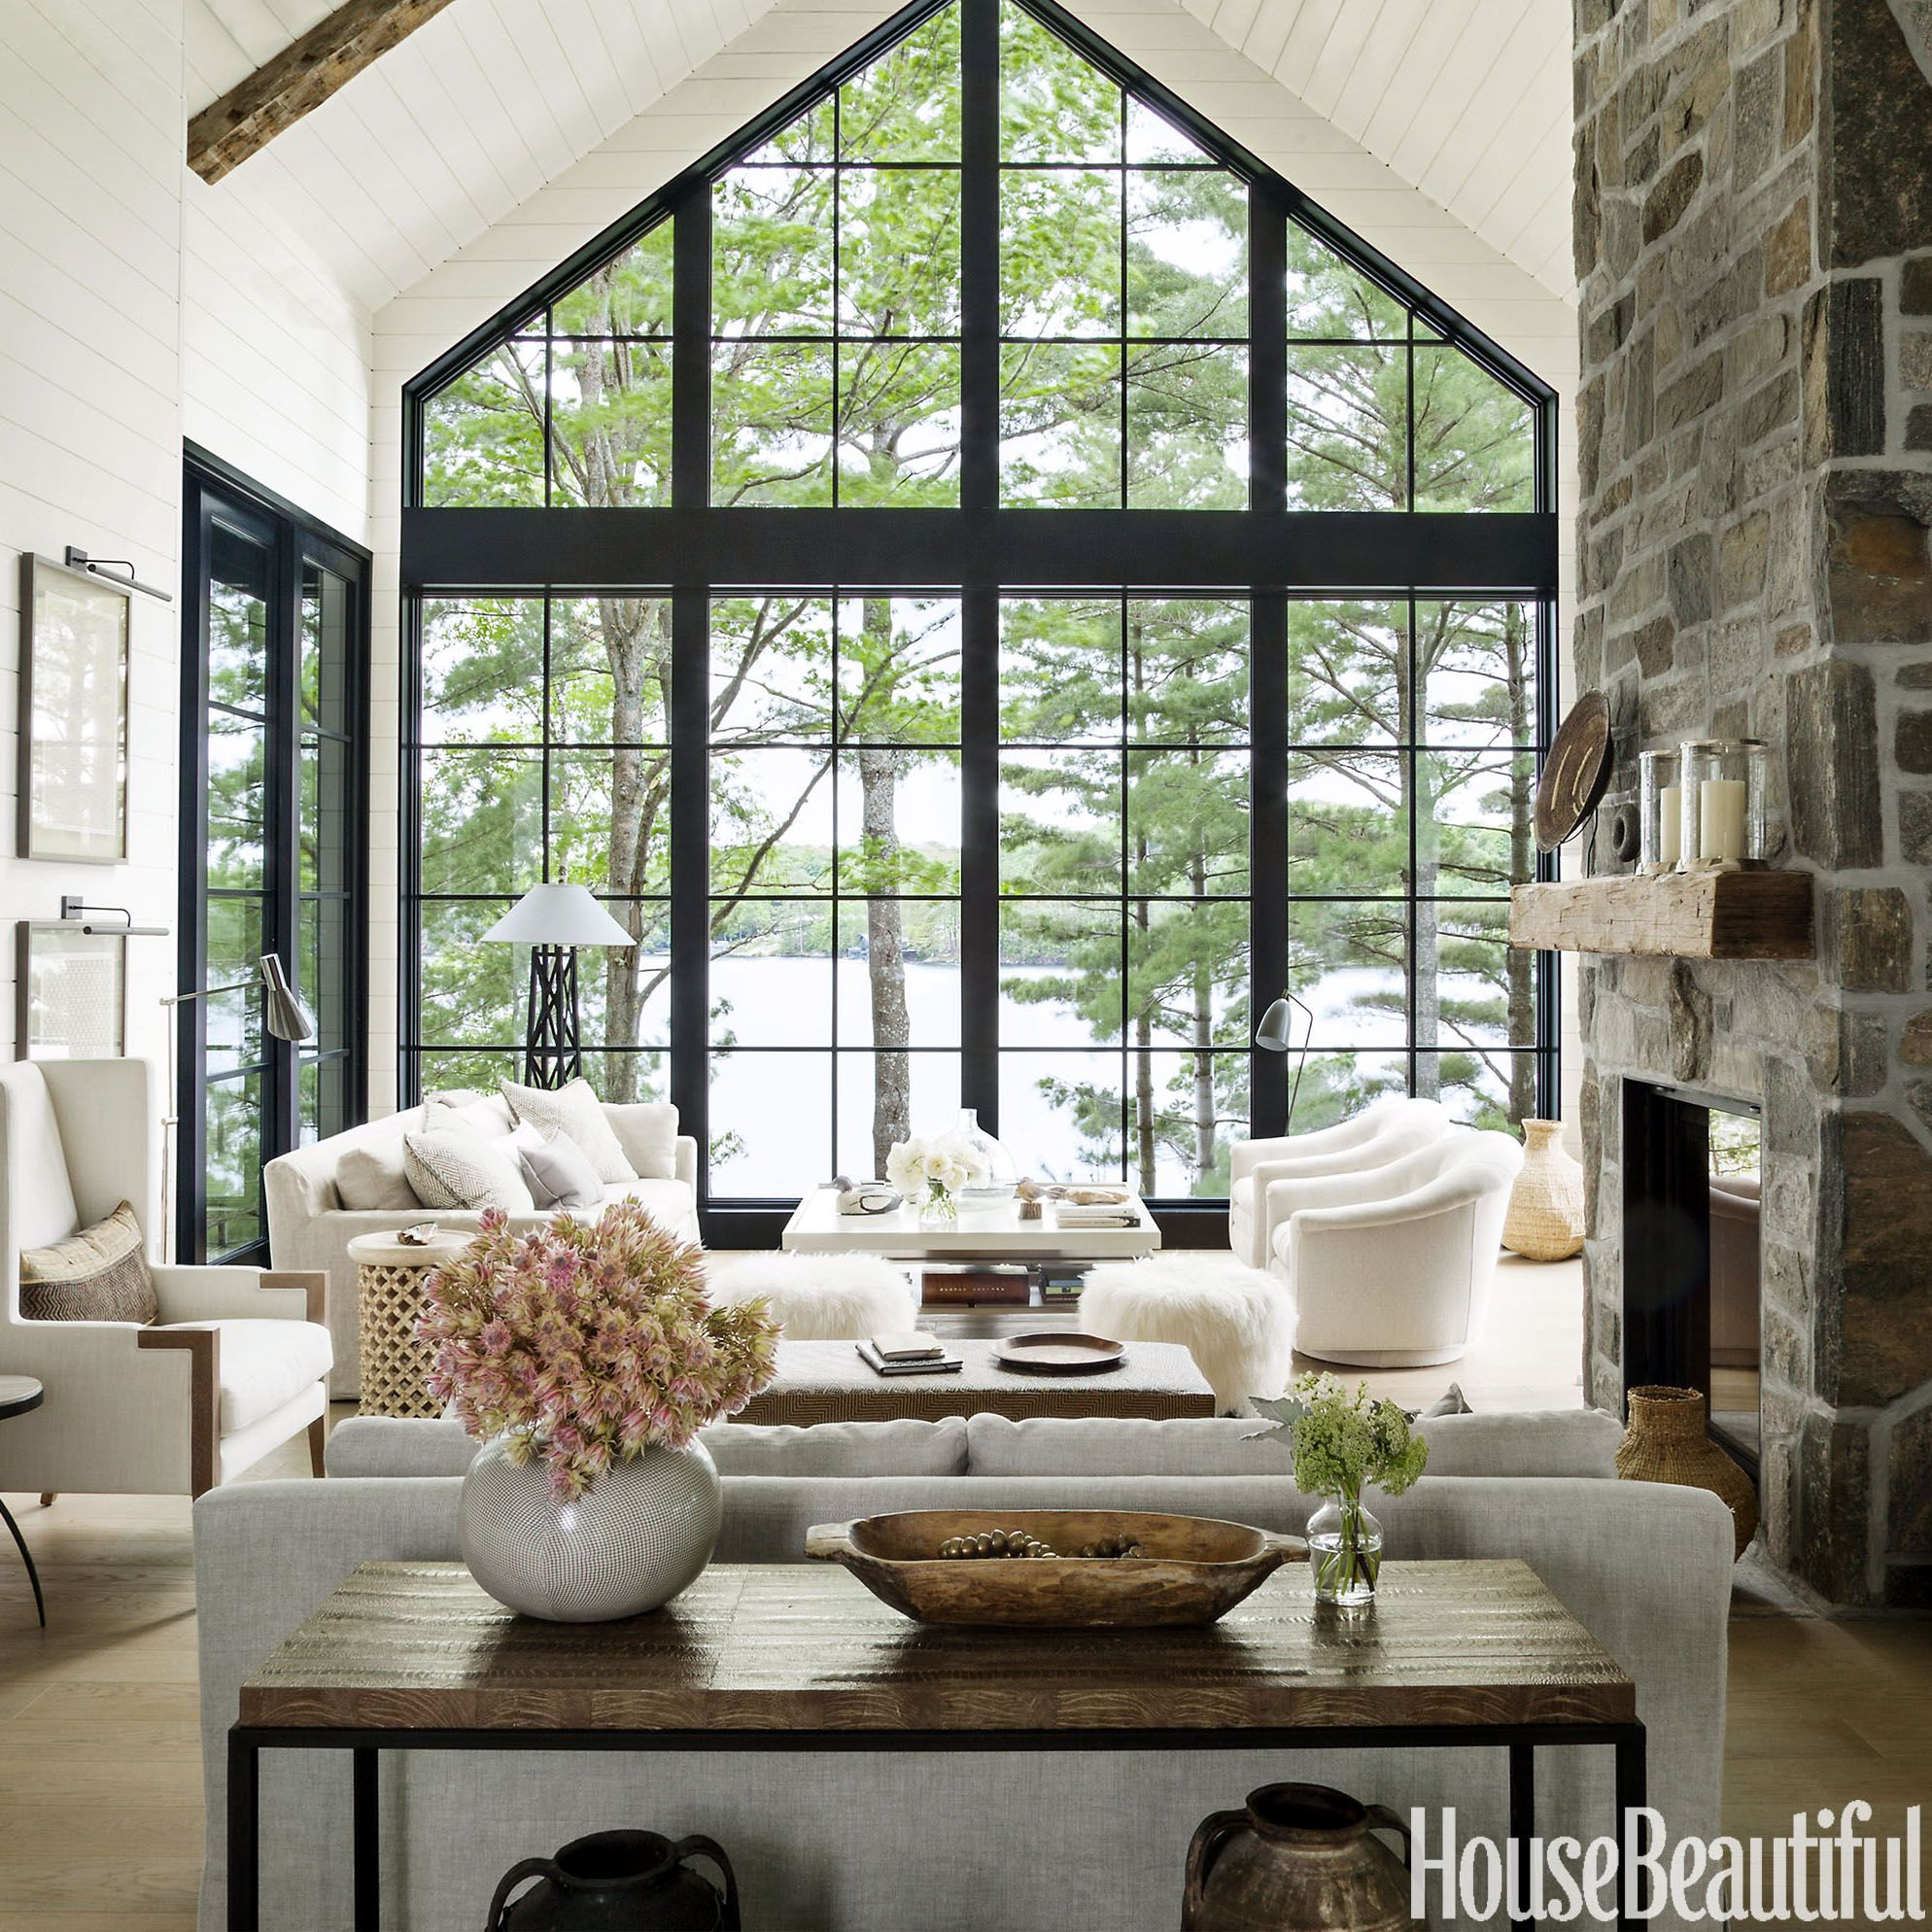 House Inside Design: Home Tour: Anne Hepfer's Rustic Modern Lake House